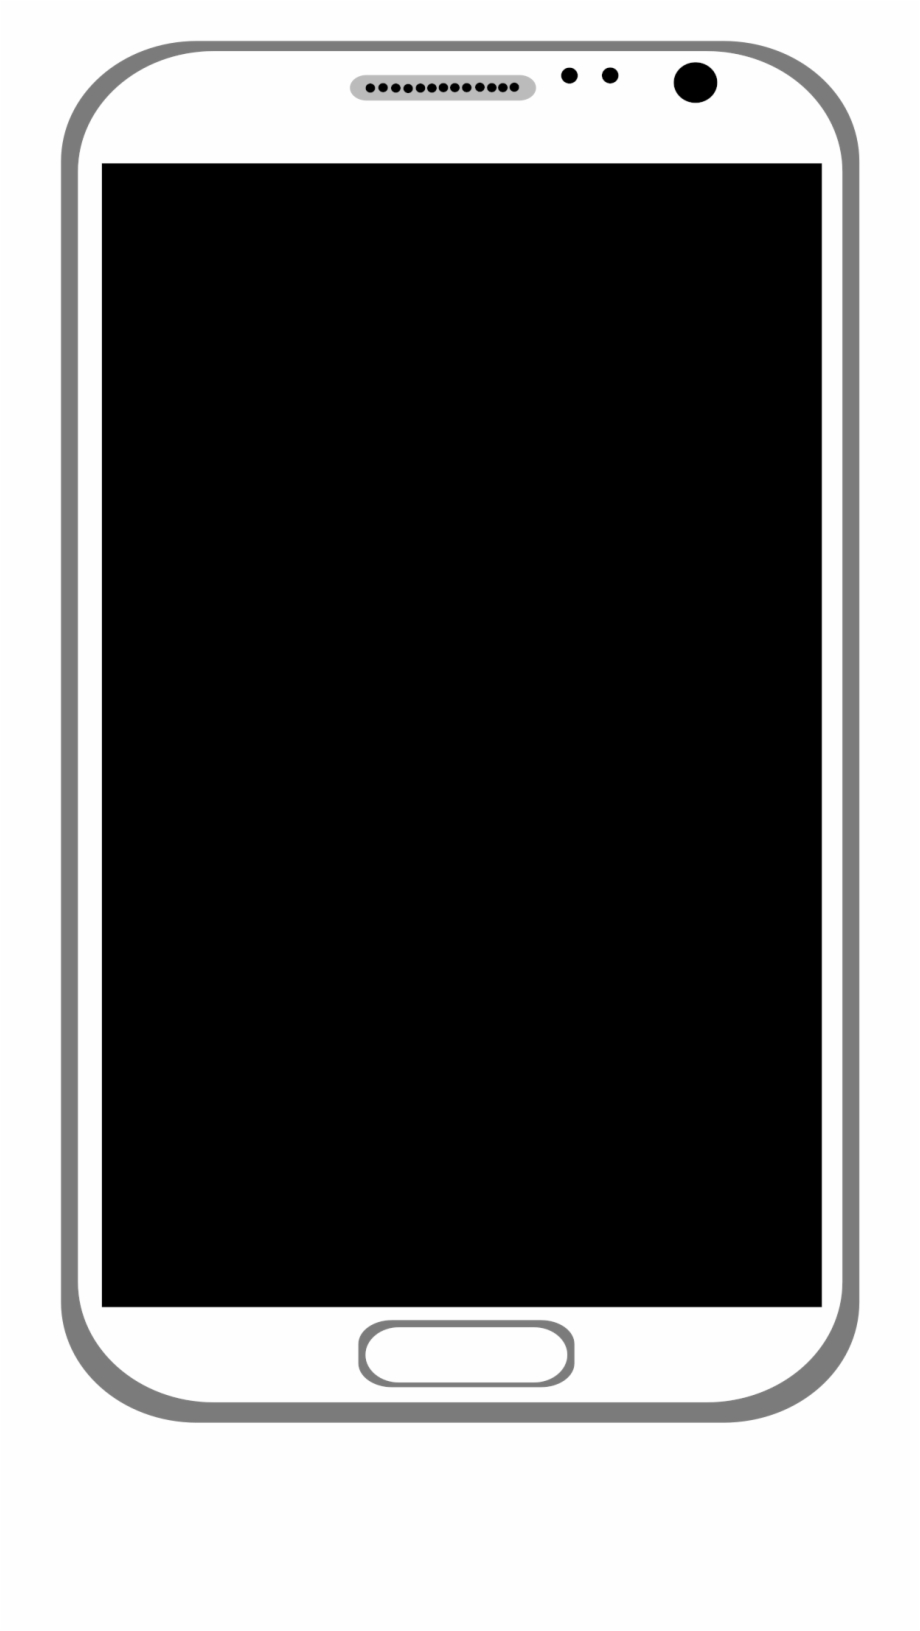 This Free Icons Png Design Of Phone Png.